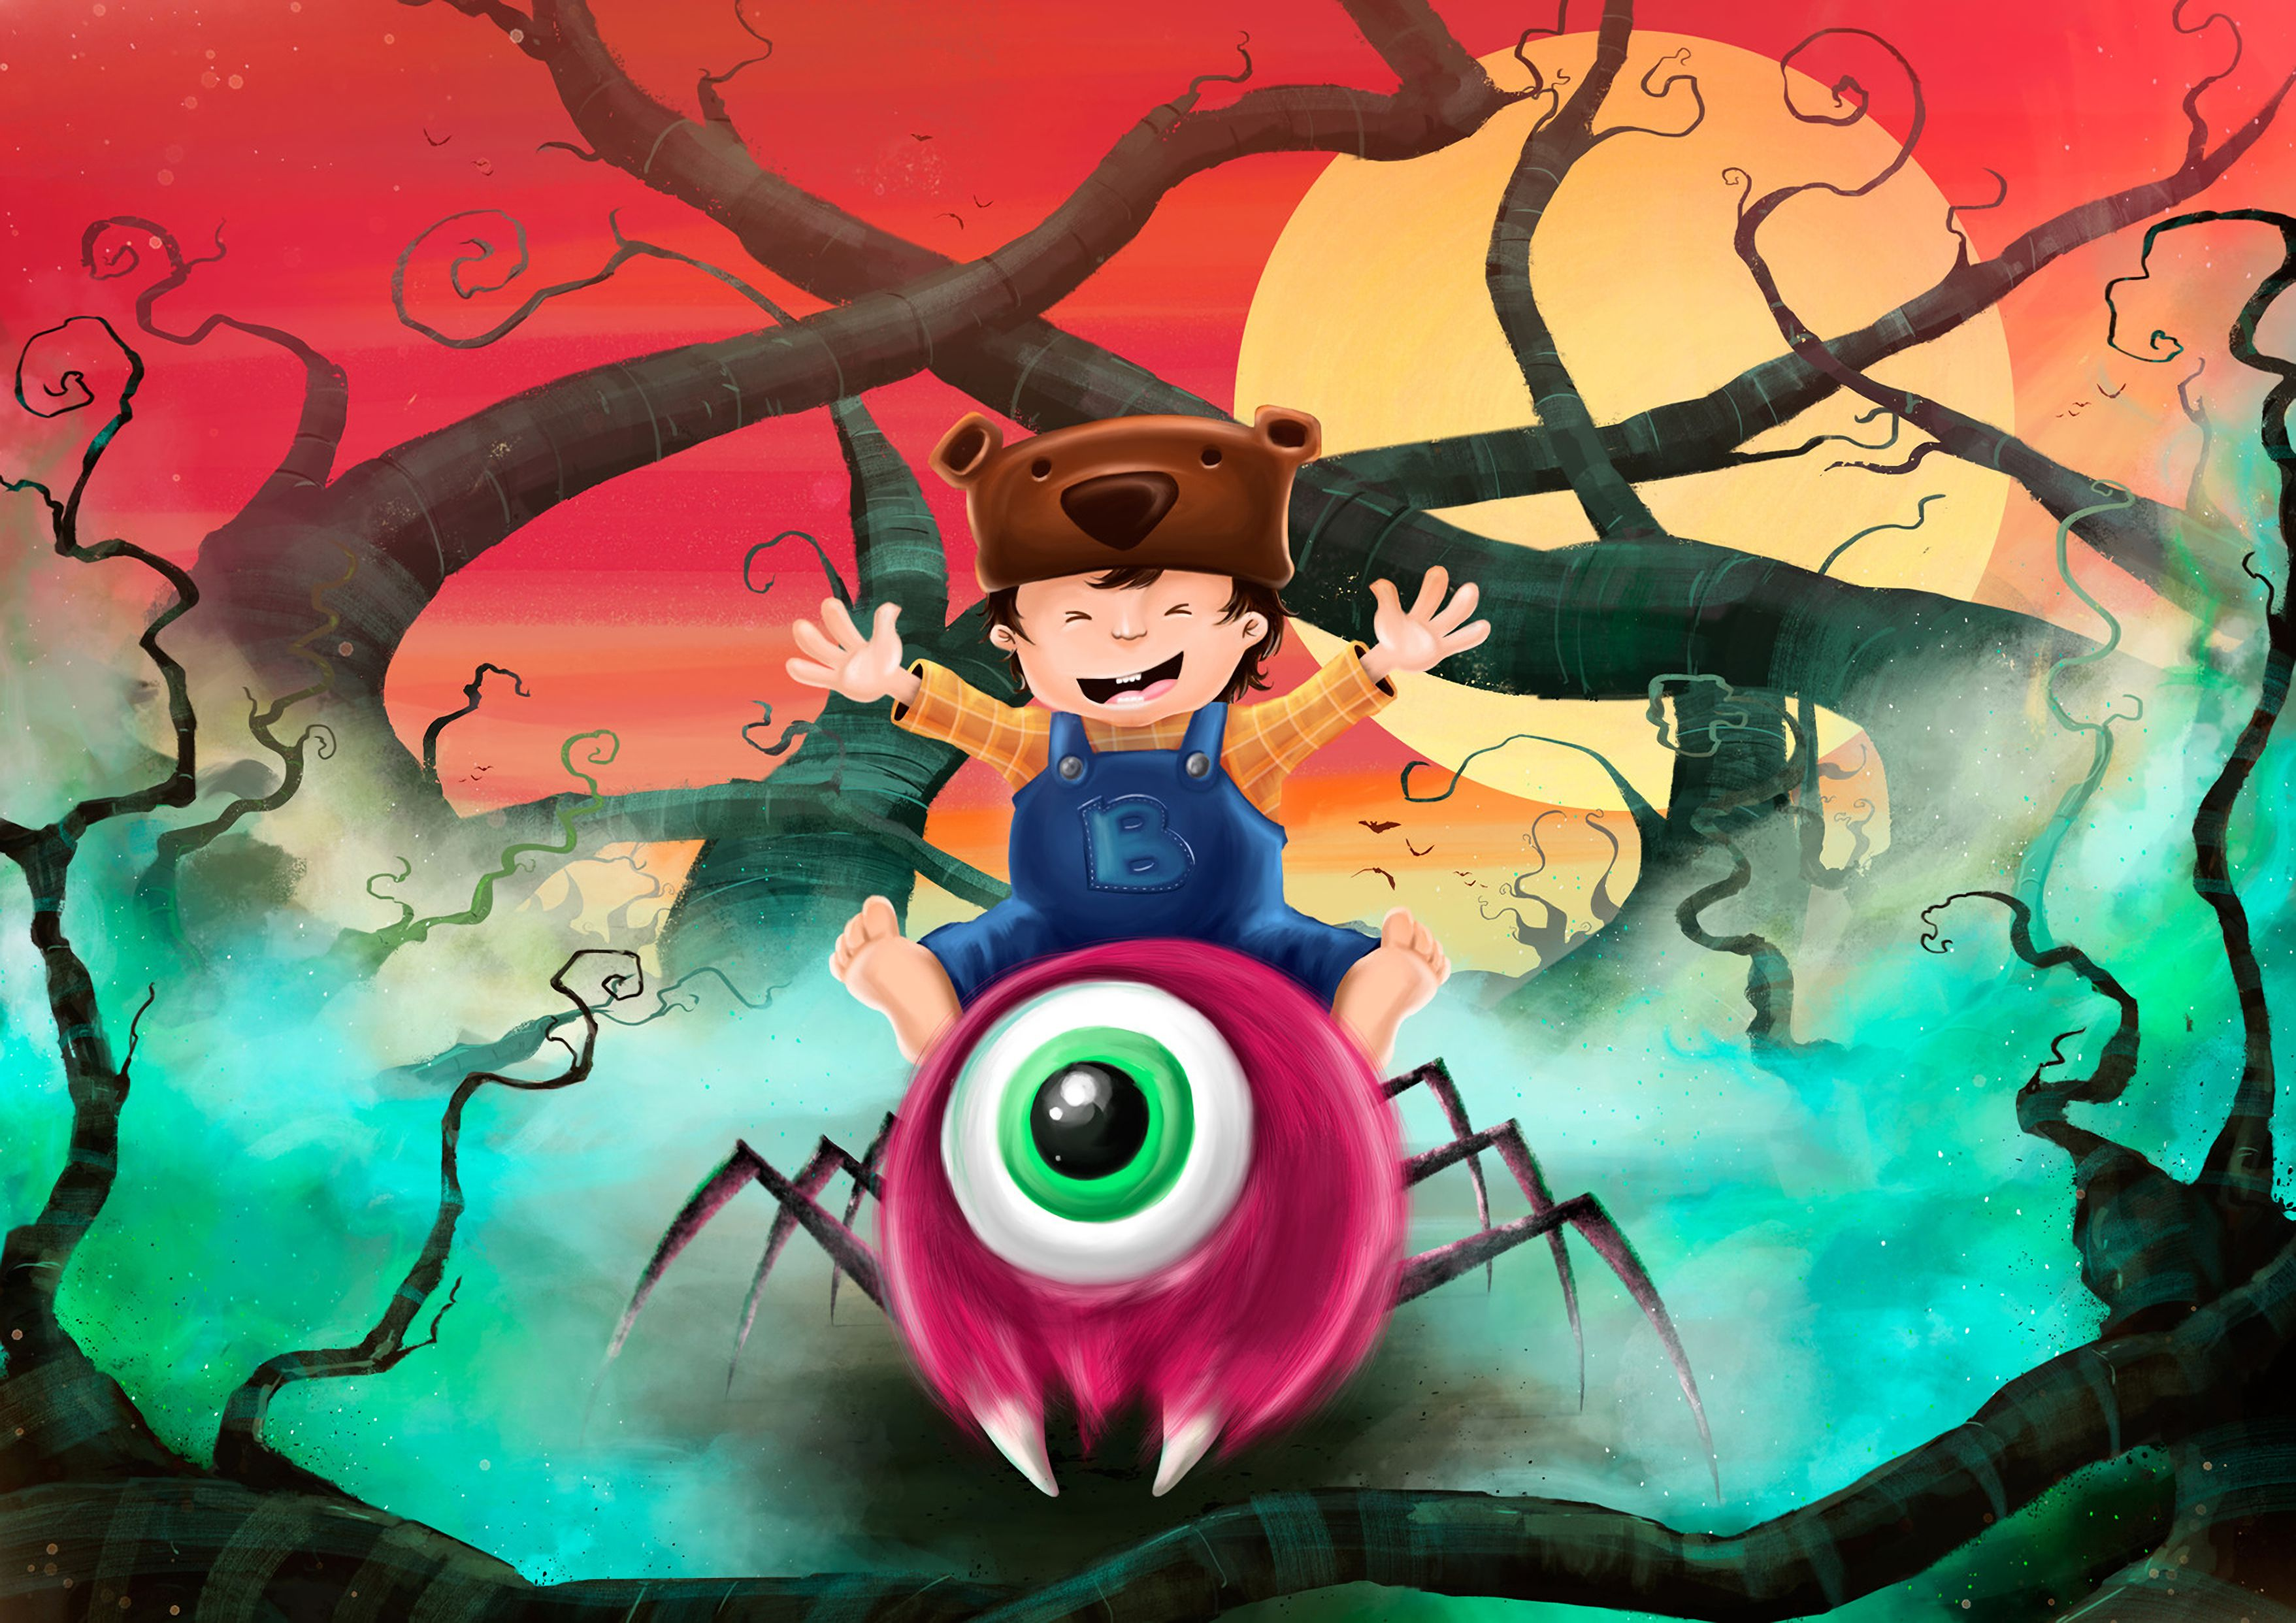 146497 download wallpaper Child, Monster, Happy, Cheery, Art, Nice, Sweetheart screensavers and pictures for free